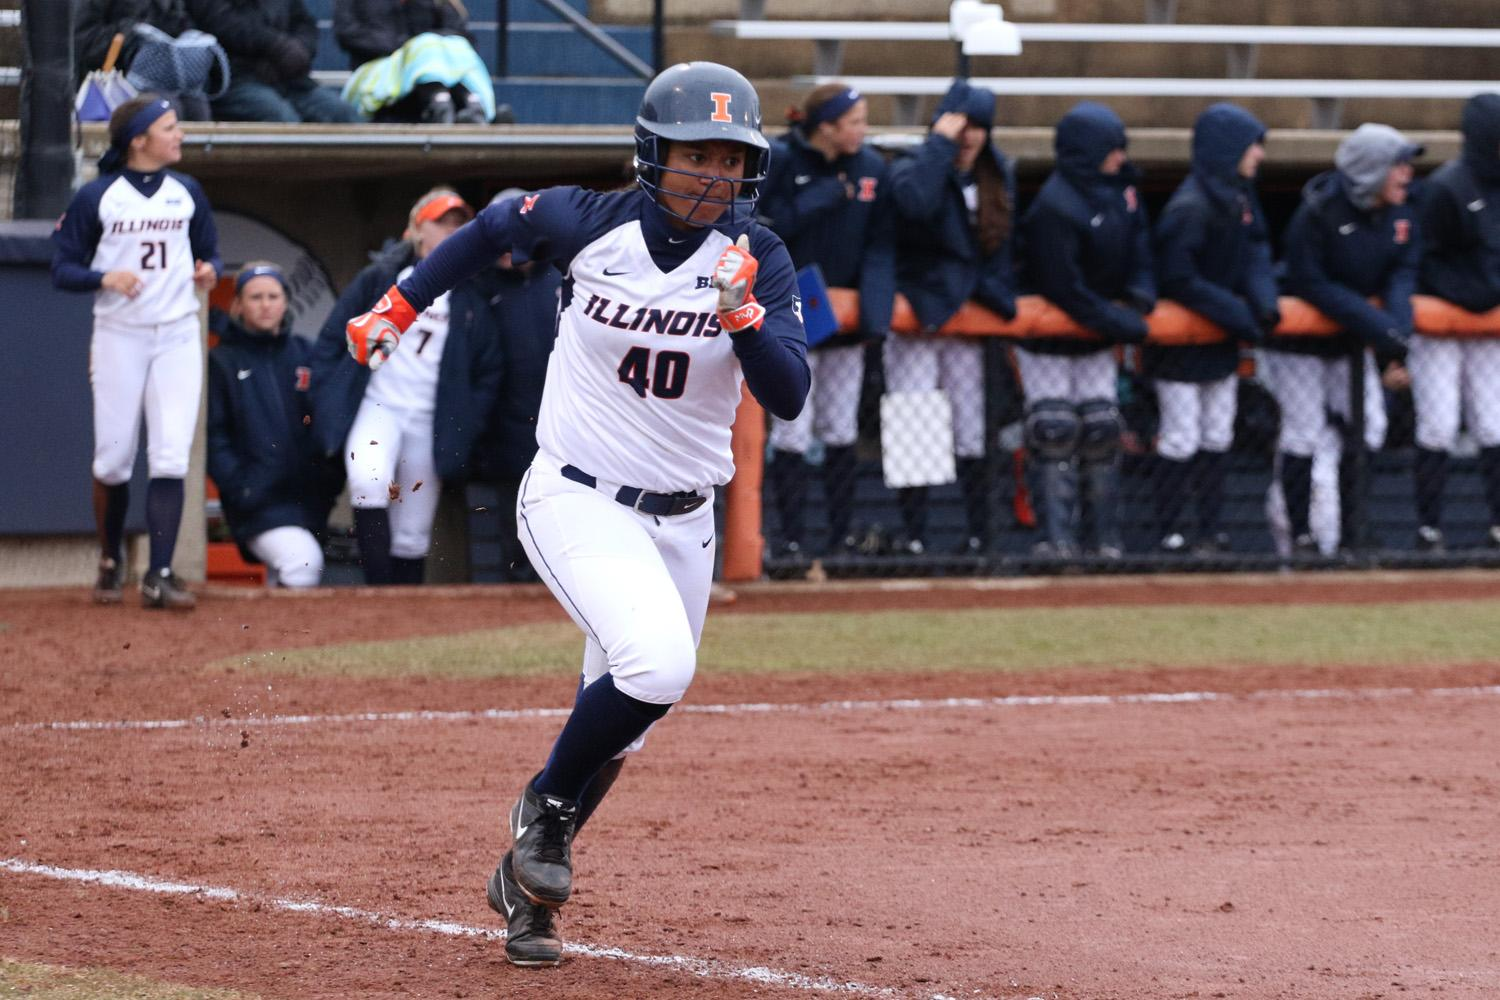 Illinois' Nicole Evans (40) sprints for first base during the softball game v. Indiana at Eichelberger Field on Sunday, Mar. 29, 2015. Illinois won 22-12.